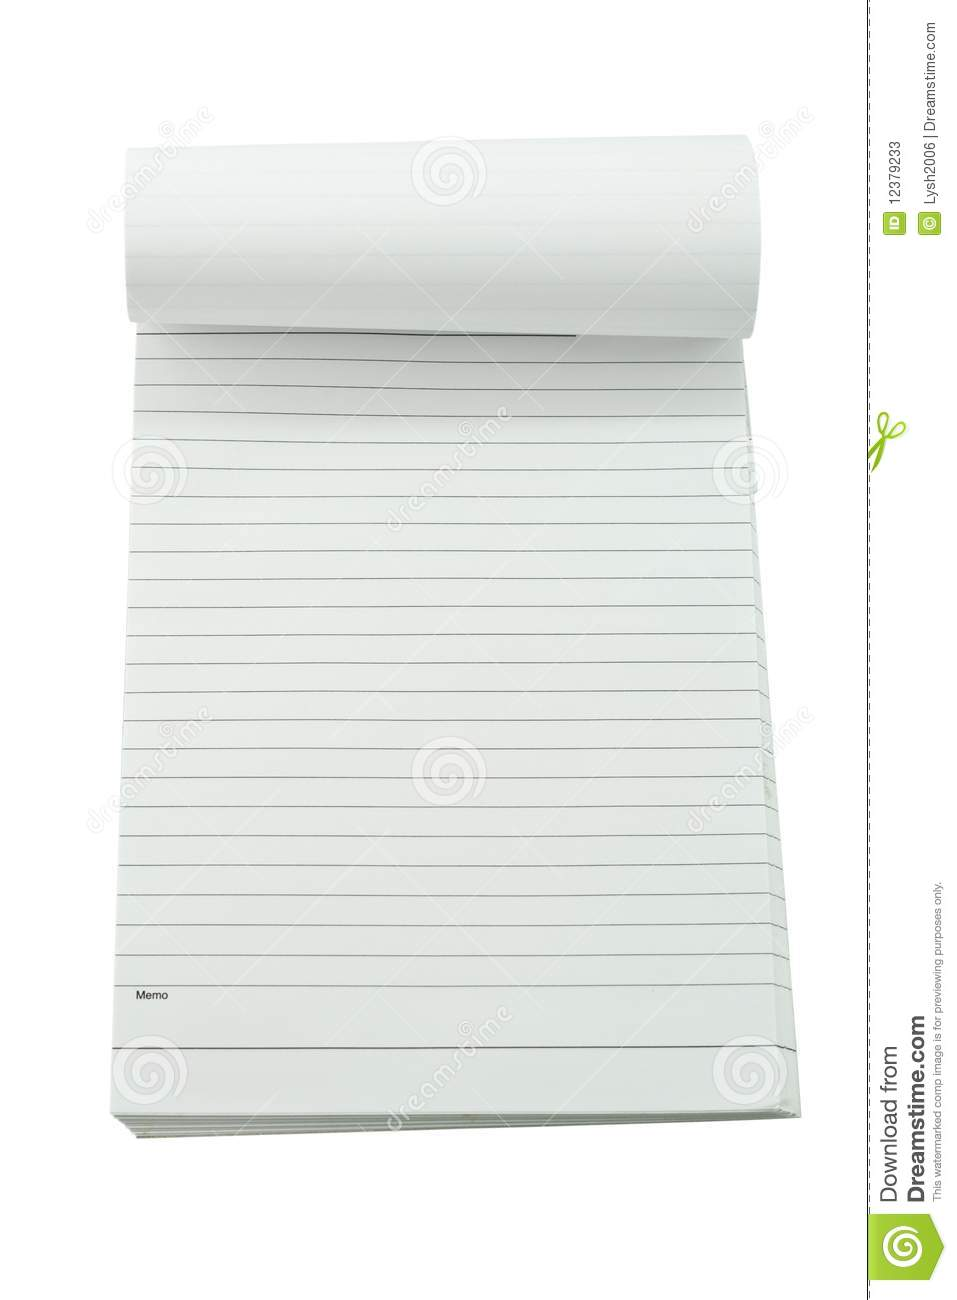 Memo Pad Stock Photos - Image: 12379233